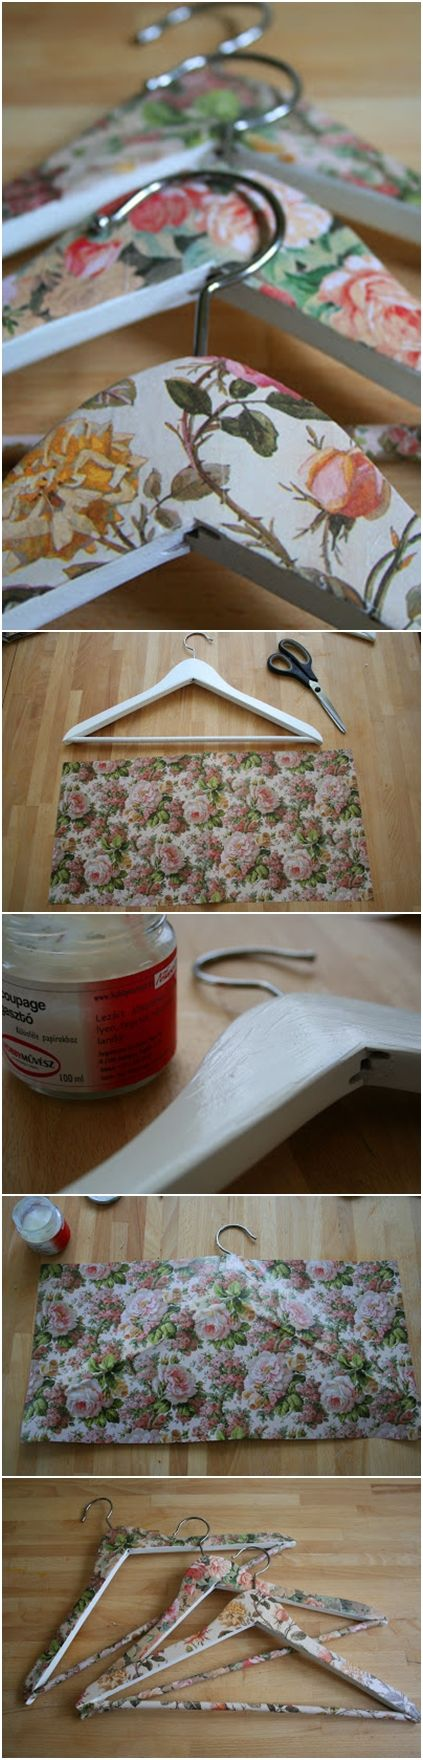 Decoupage con perchas manualidades pinterest perchas for Perchas con ganchos